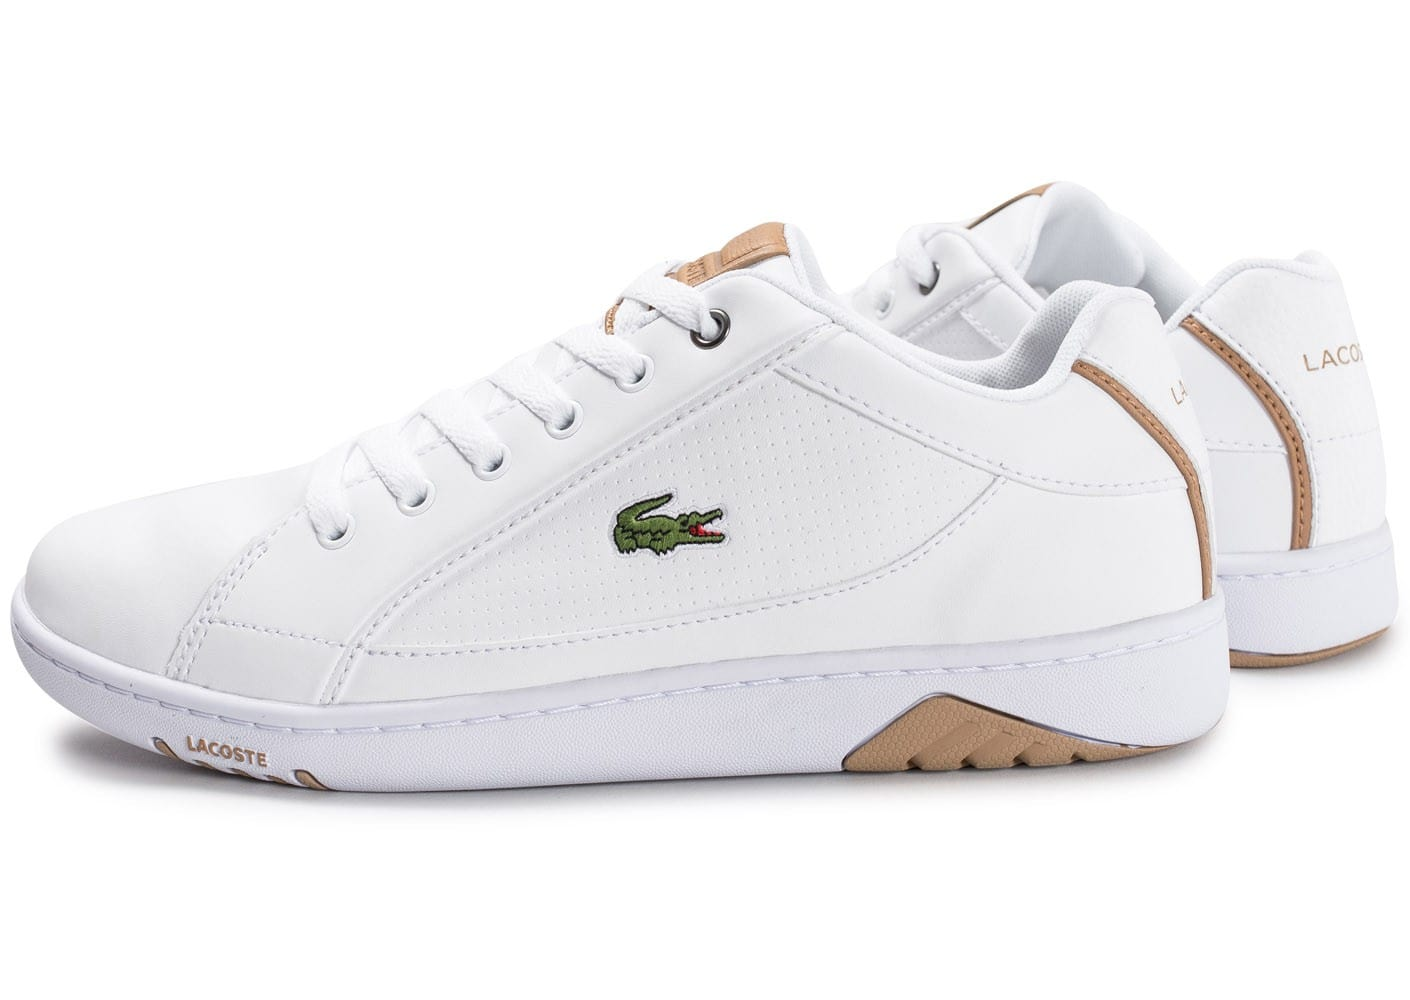 Homme Chaussures Eh07s9 Blanches Lacoste Survivor SwcAgTExqw